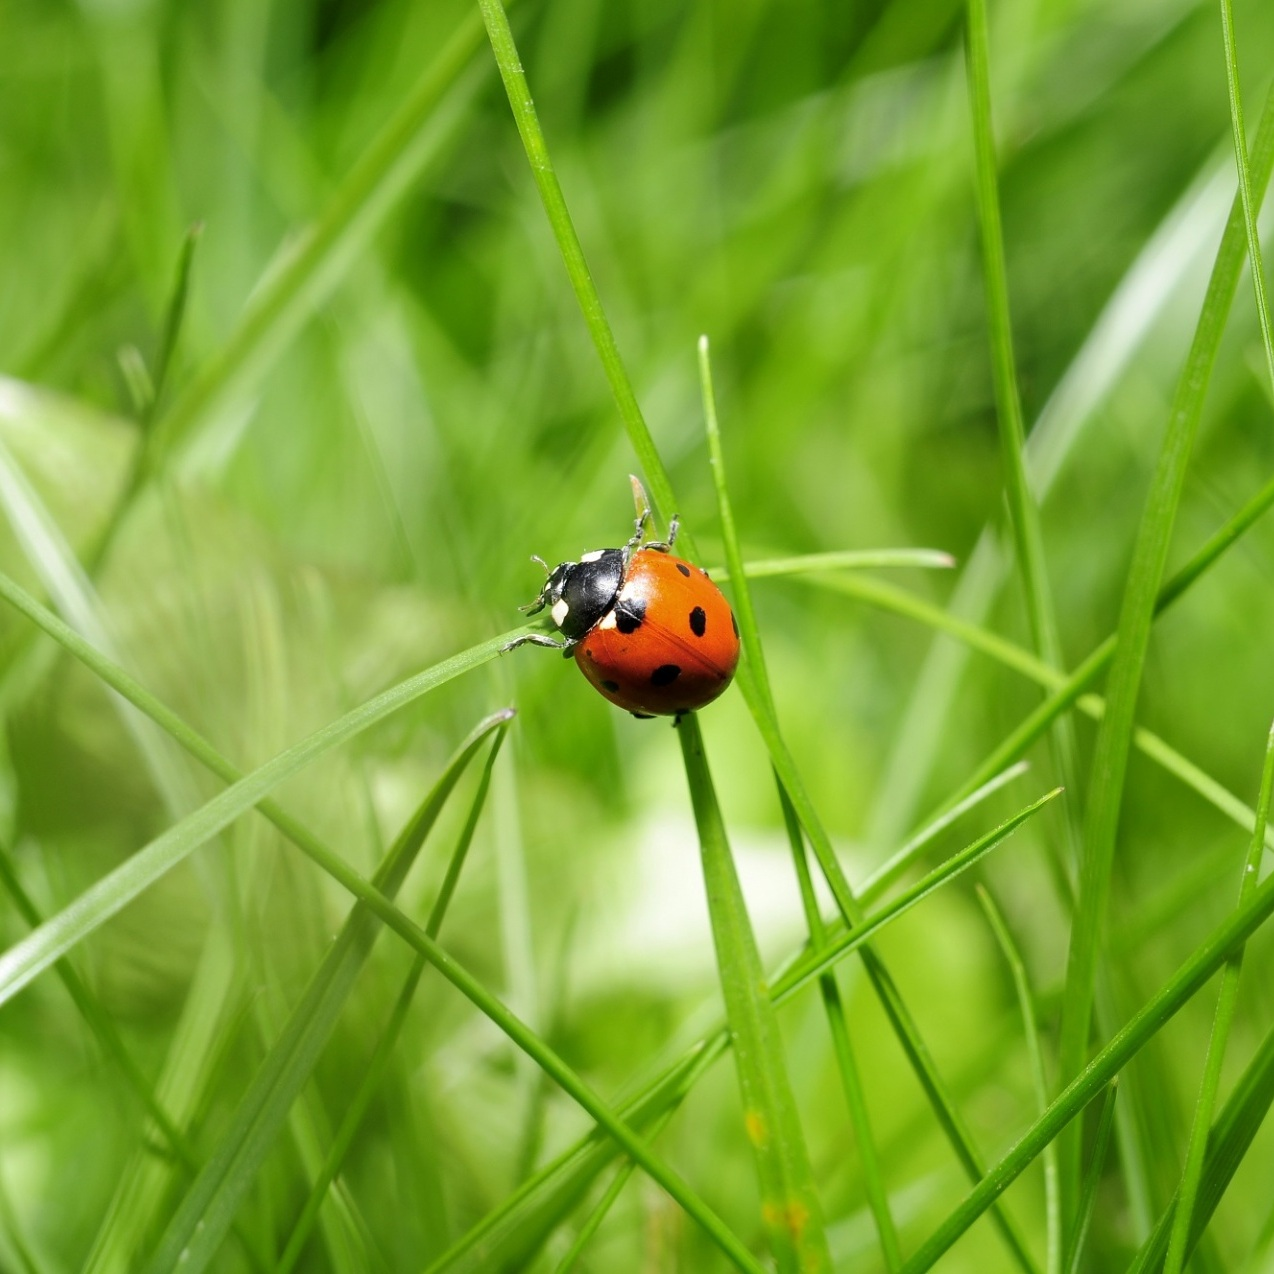 ladybug-in-the-grass.jpg